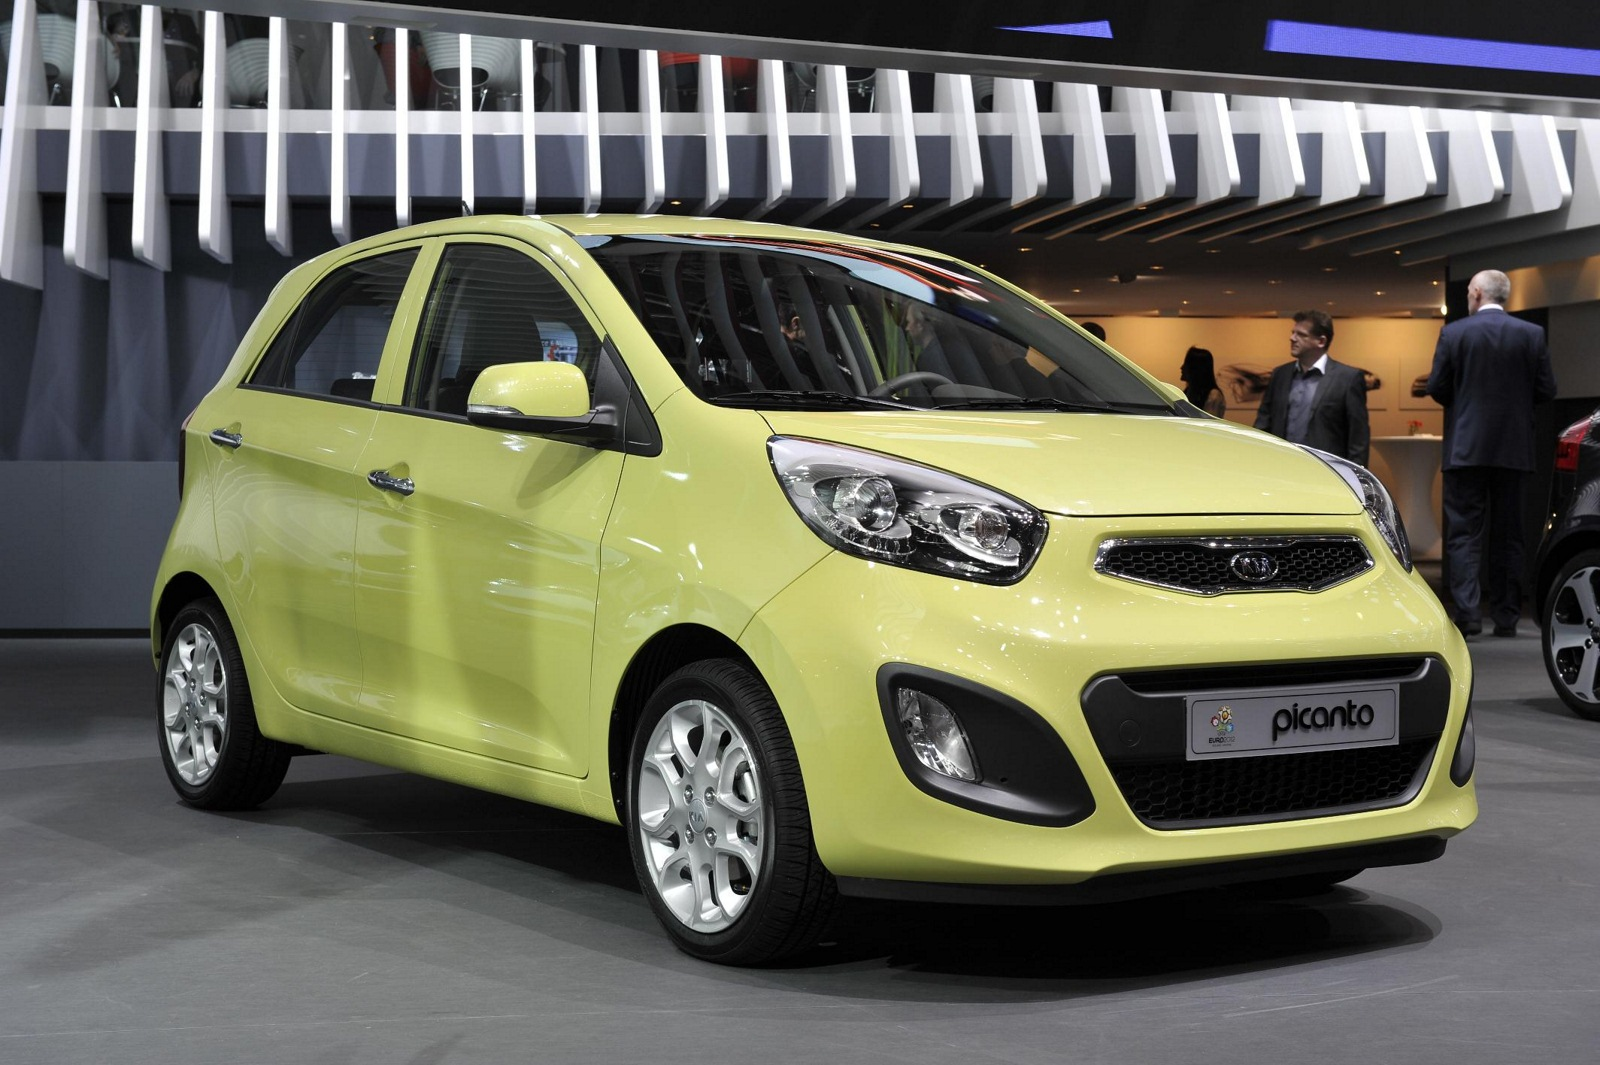 kia picanto ii 2012 wallpaper